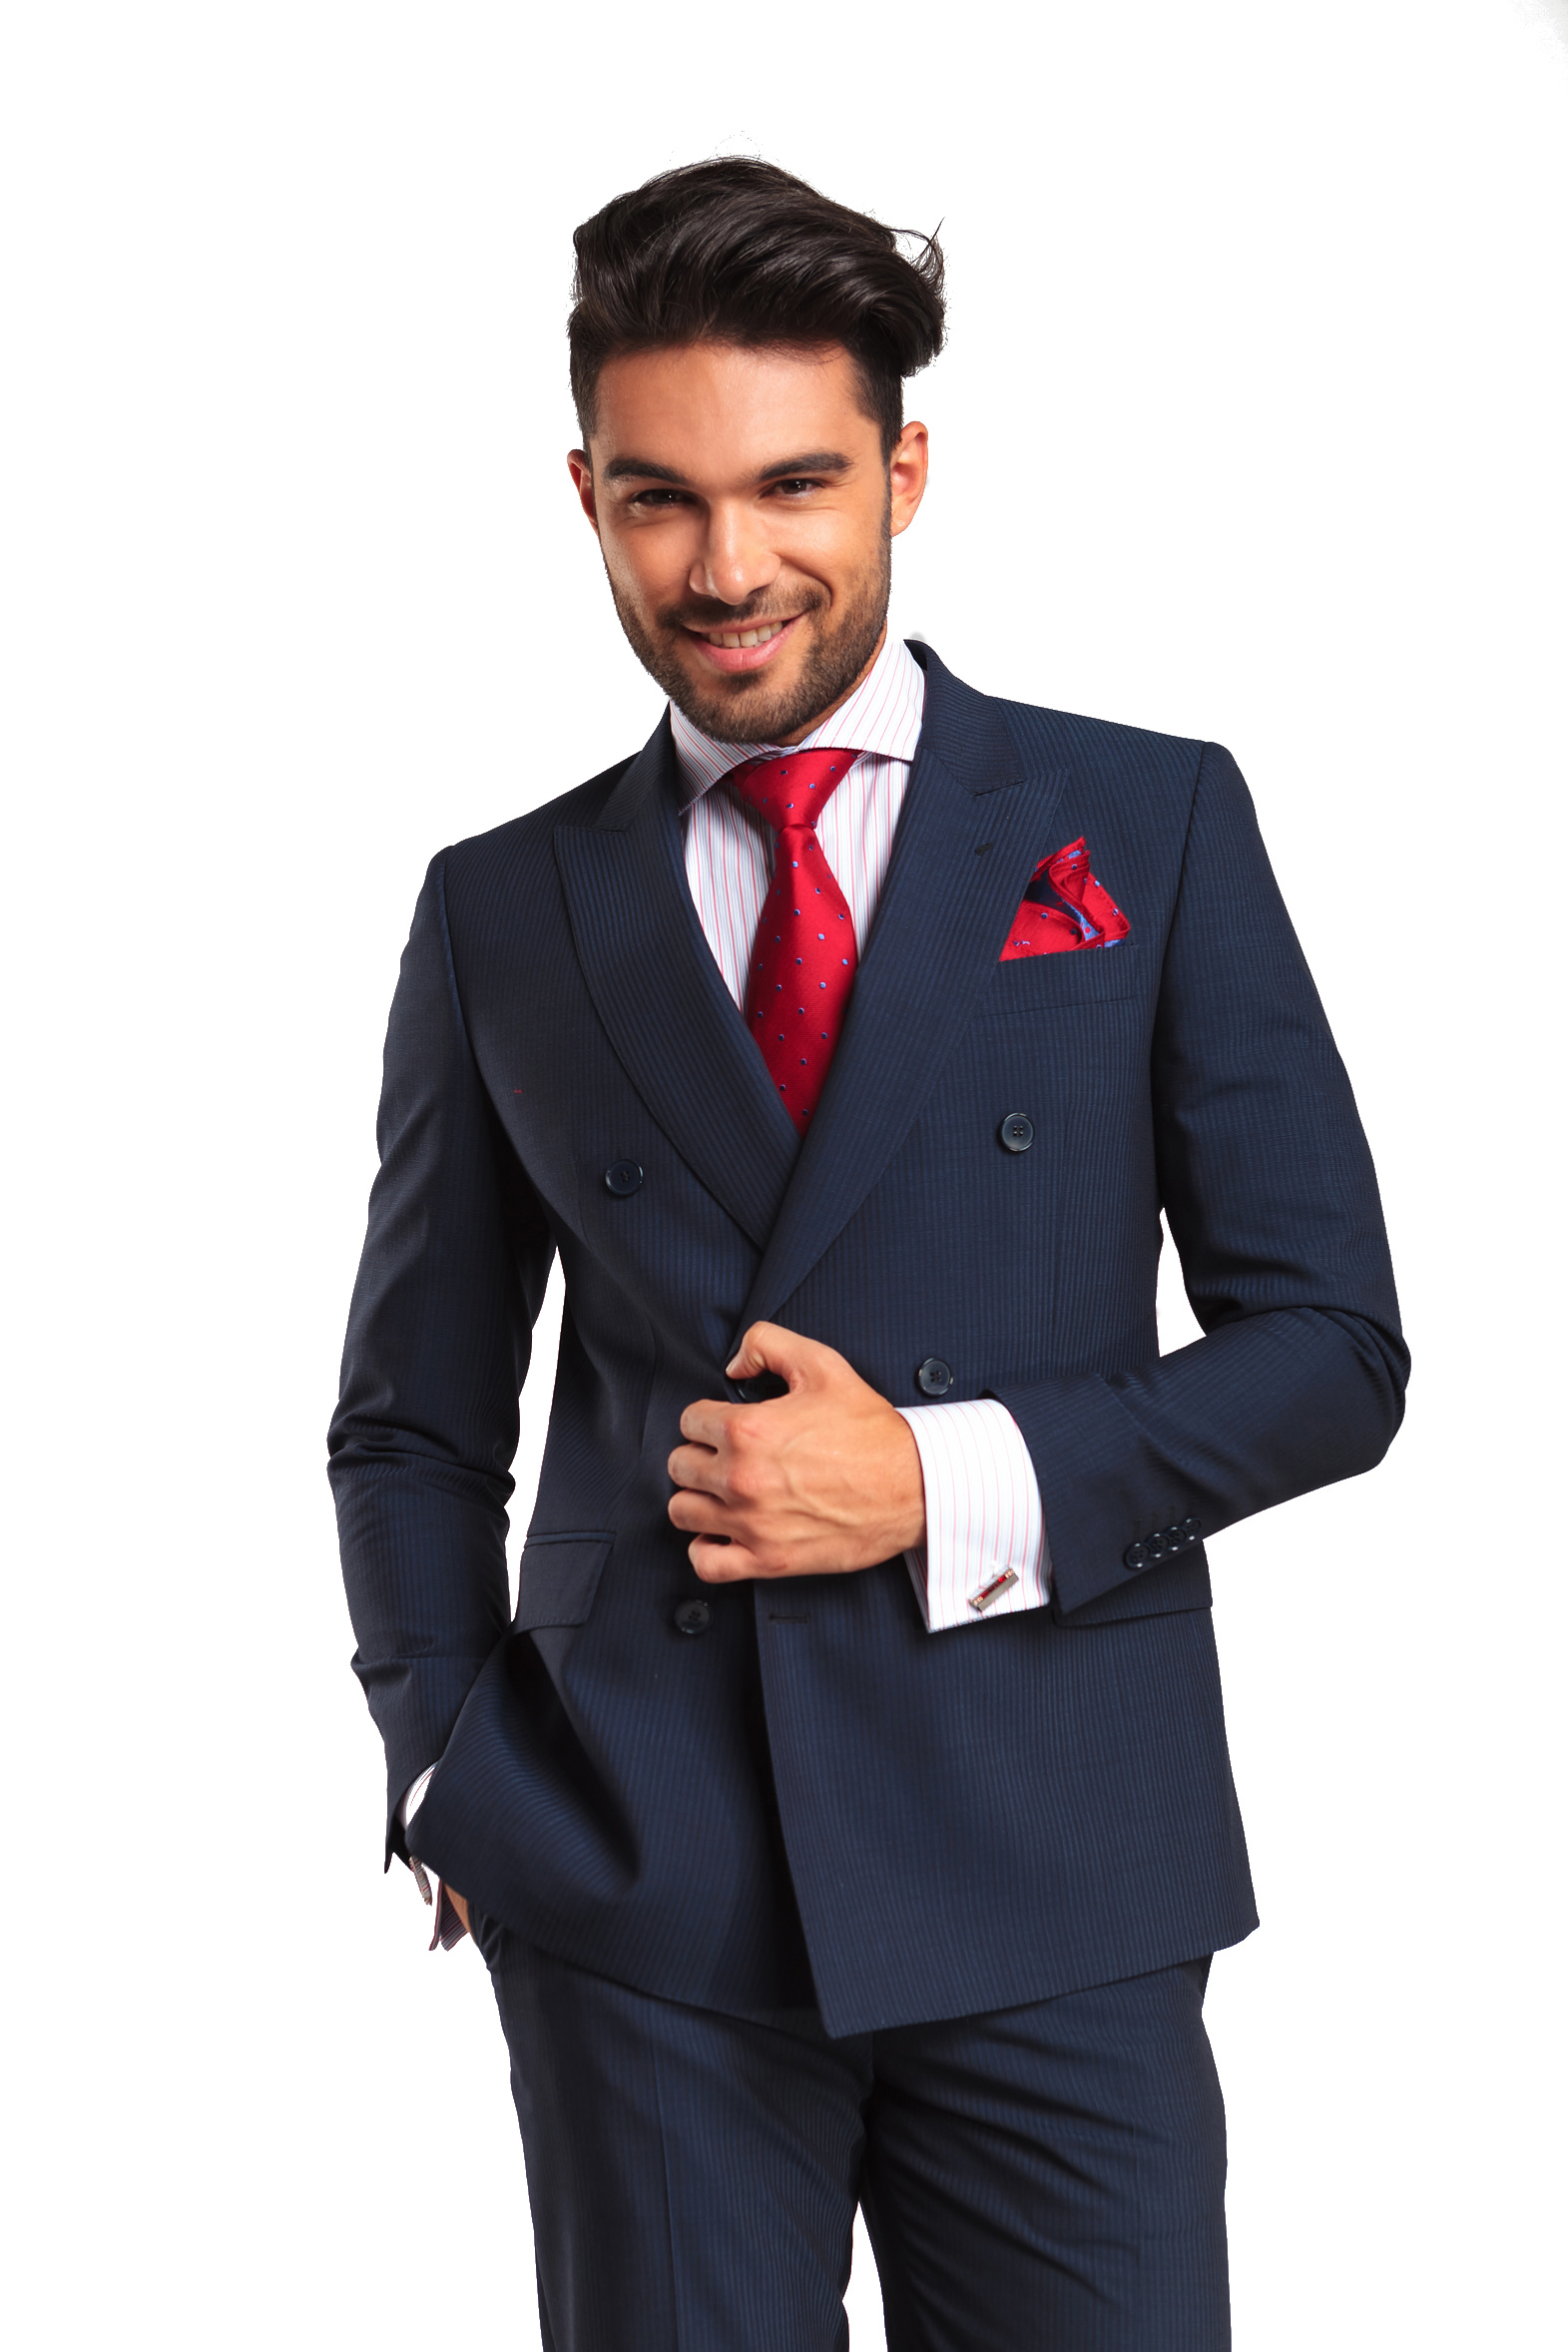 successful young business man in double breasted suit smiling at the camera